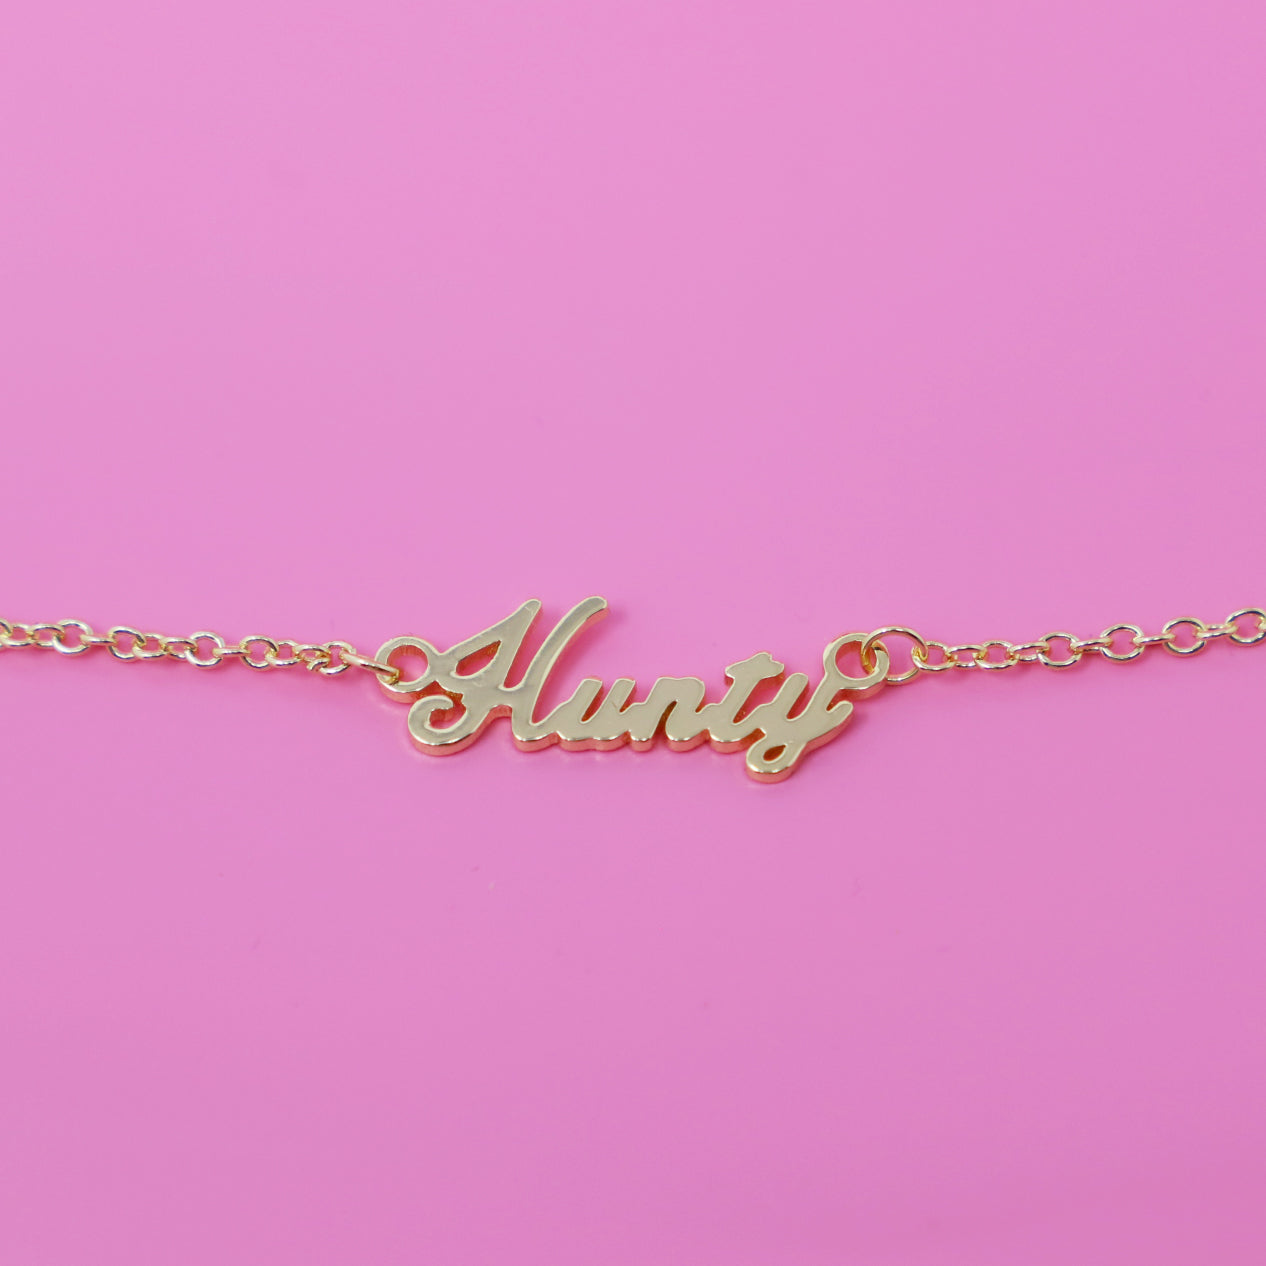 Hunty Necklace